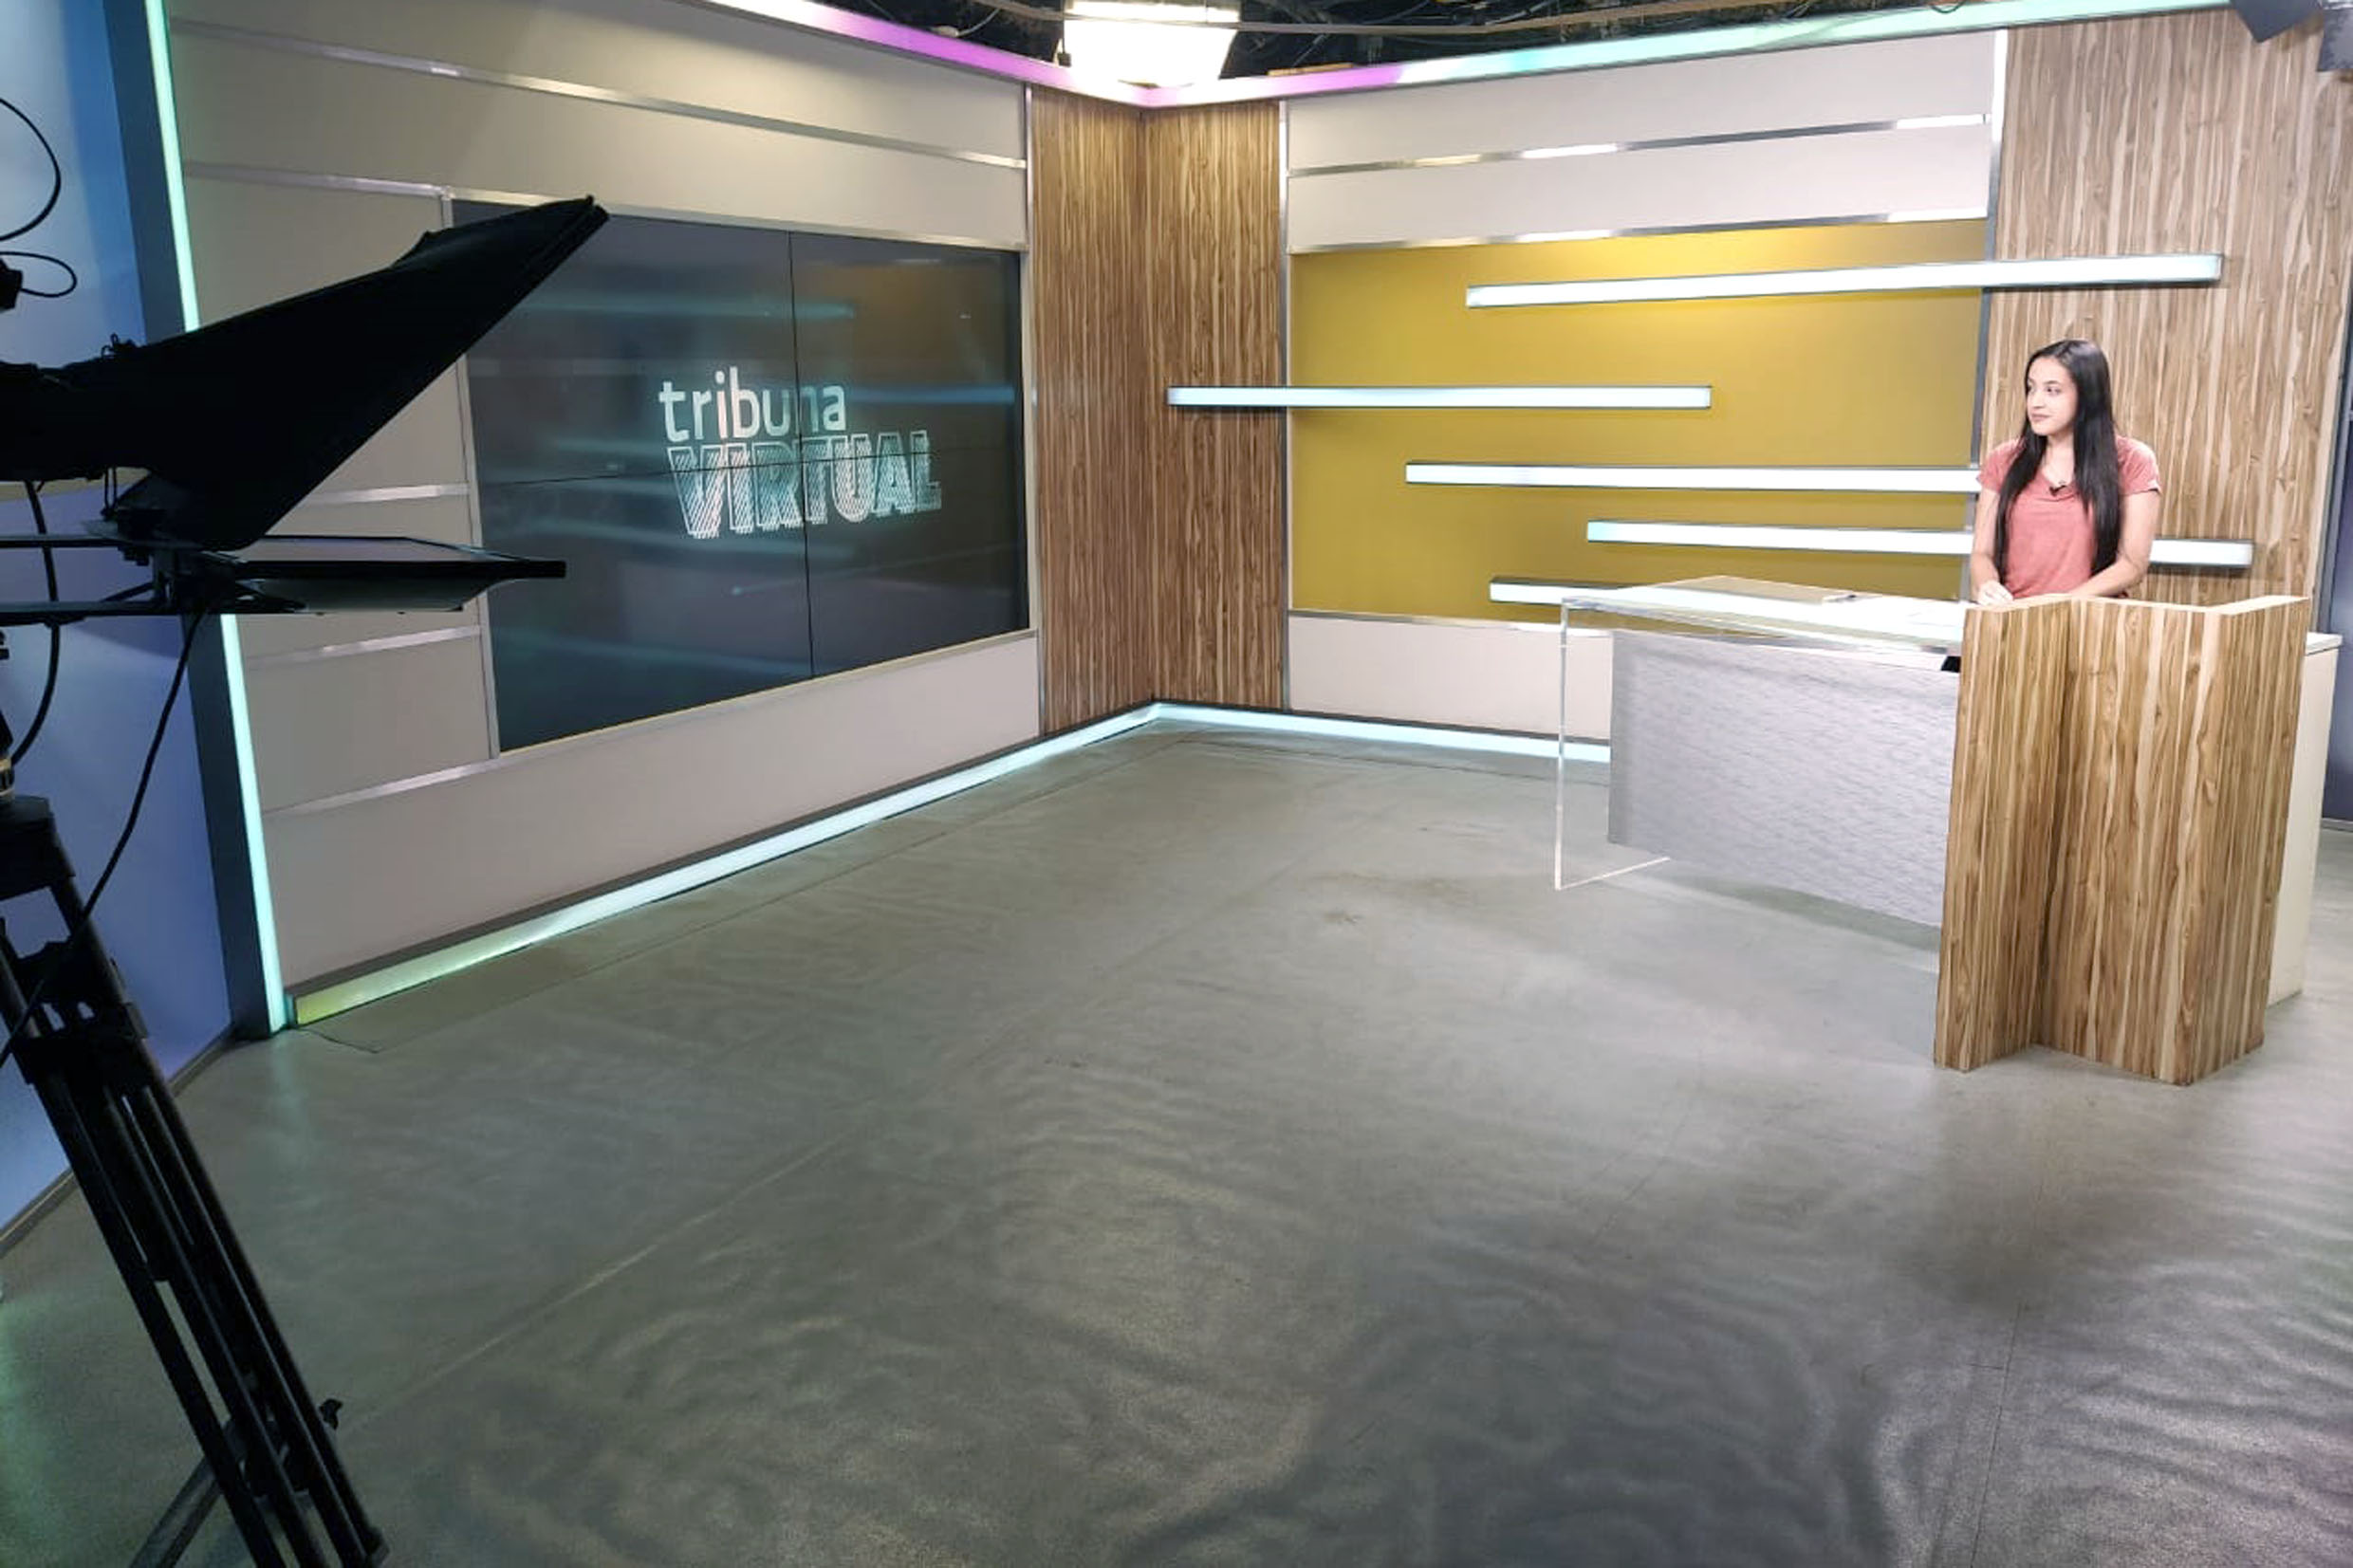 Tribuna Virtual<a style='float:right' href='https://www3.al.sp.gov.br/repositorio/noticia/N-04-2020/fg248490.jpg' target=_blank><img src='/_img/material-file-download-white.png' width='14px' alt='Clique para baixar a imagem'></a>